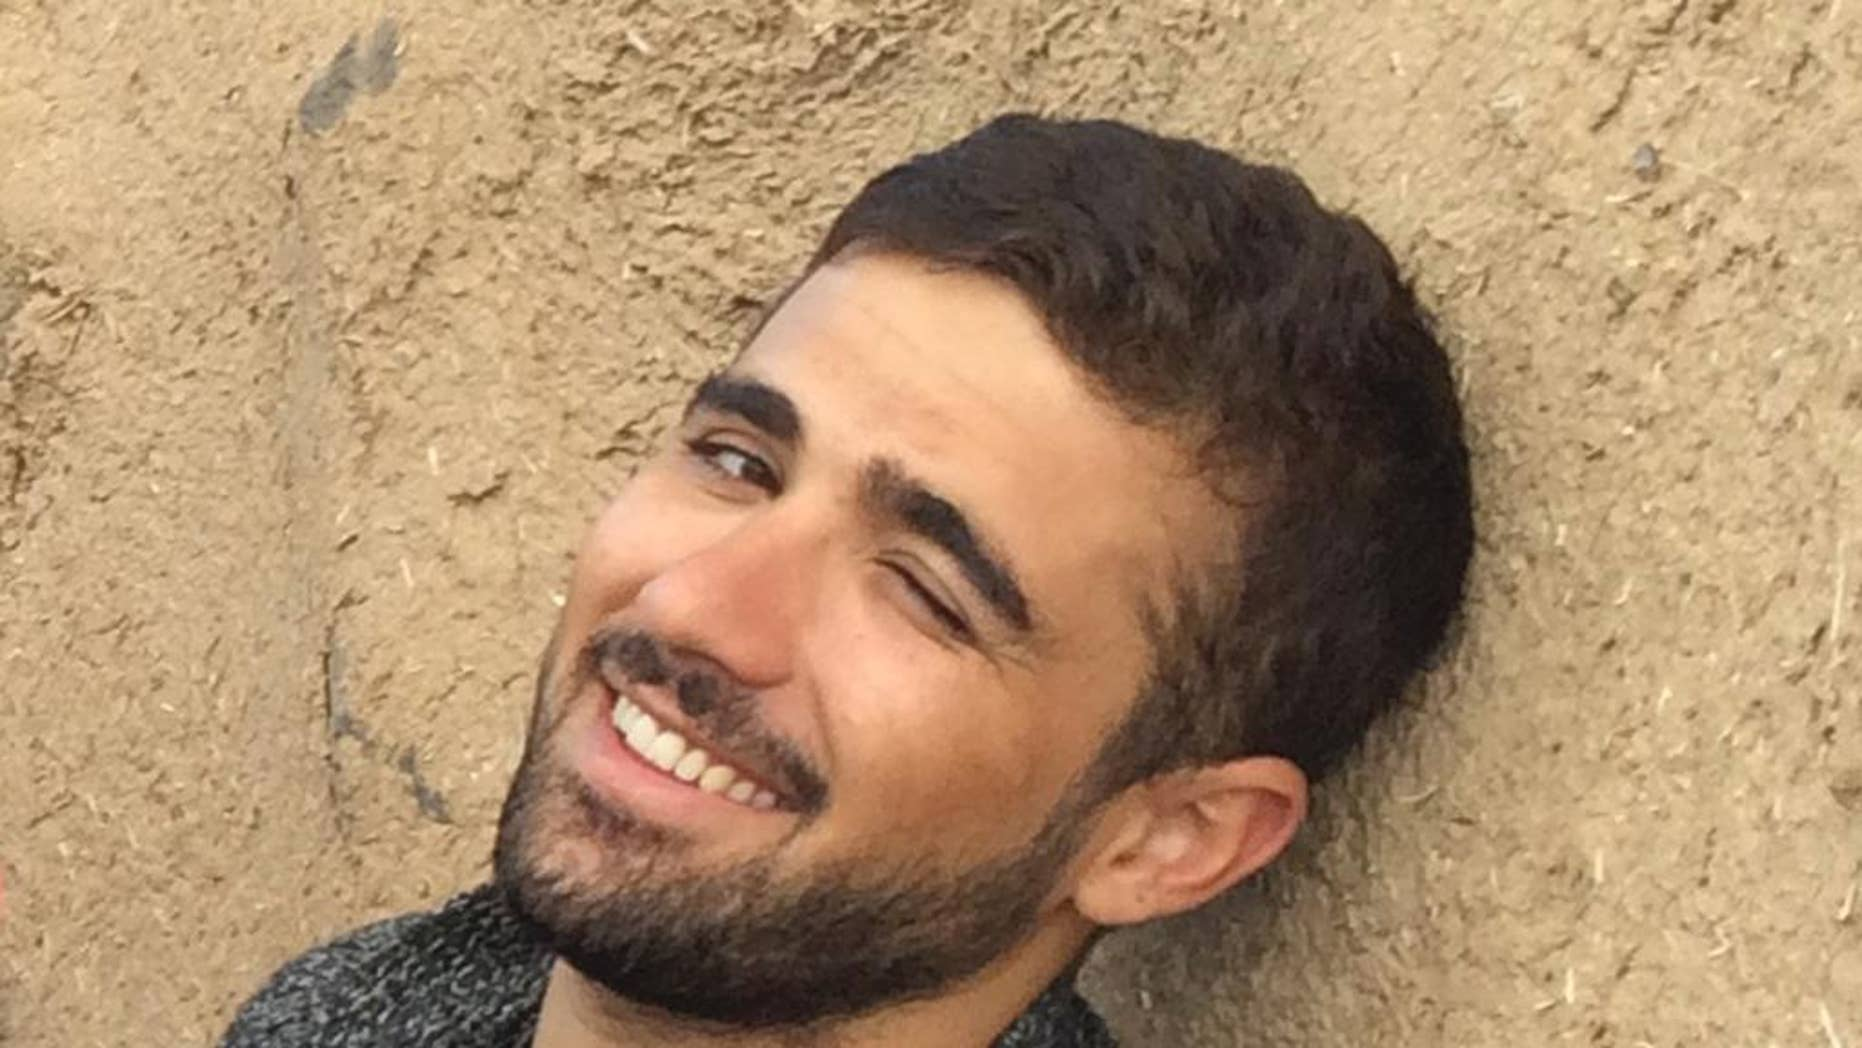 In this Saturday Nov. 1, 2014 photograph, freelance translator Mohammed Rasool is pictured during a break while working with an Associated Press team in Turkey. In August 2015, Rasool, a 24-year-old Iraqi Kurd who has worked as a fixer for The Associated Press, was helping two Vice News reporters covering clashes between the PKK's youth group and police. He was arrested on Aug. 27 and remains in a maximum security prison and Turkish authorities have neither indicted him nor adequately explained why they are holding him. (AP Photo/Elena Becatoros)